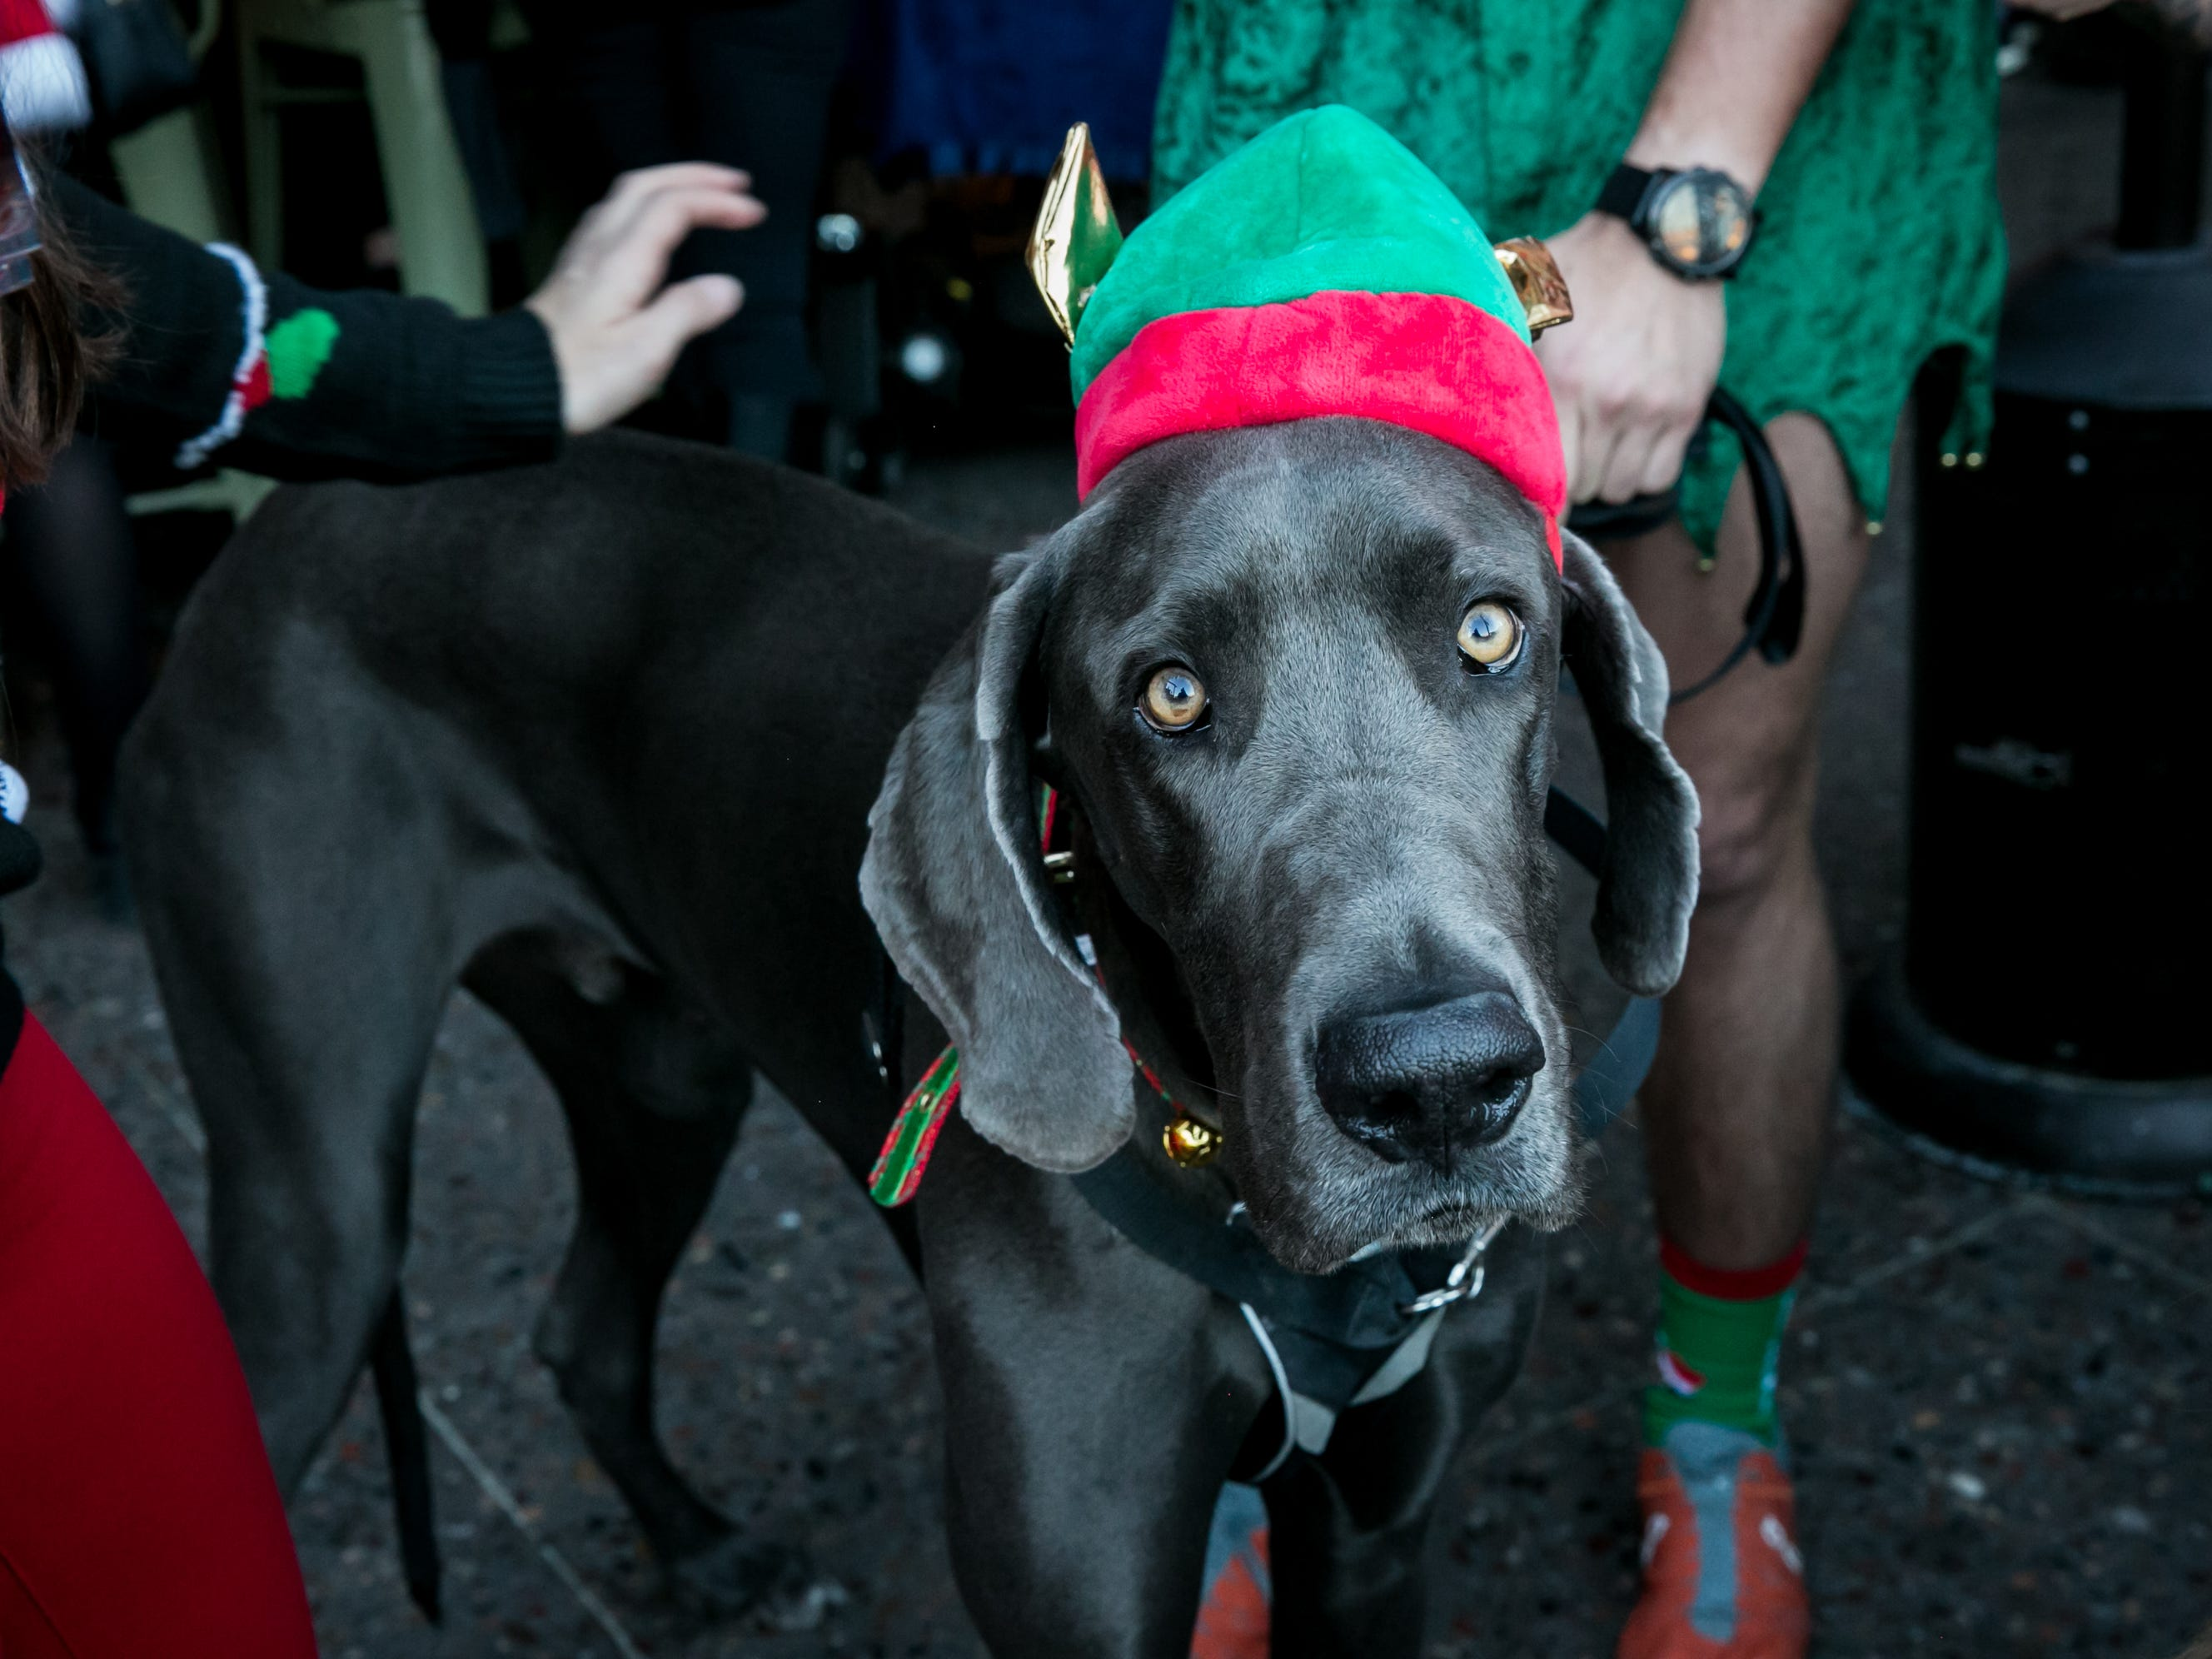 This dog yearned to pull Santa's sleigh during the Scottsdale Santa Crawl at Whiskey Row on Saturday, December 8, 2018.